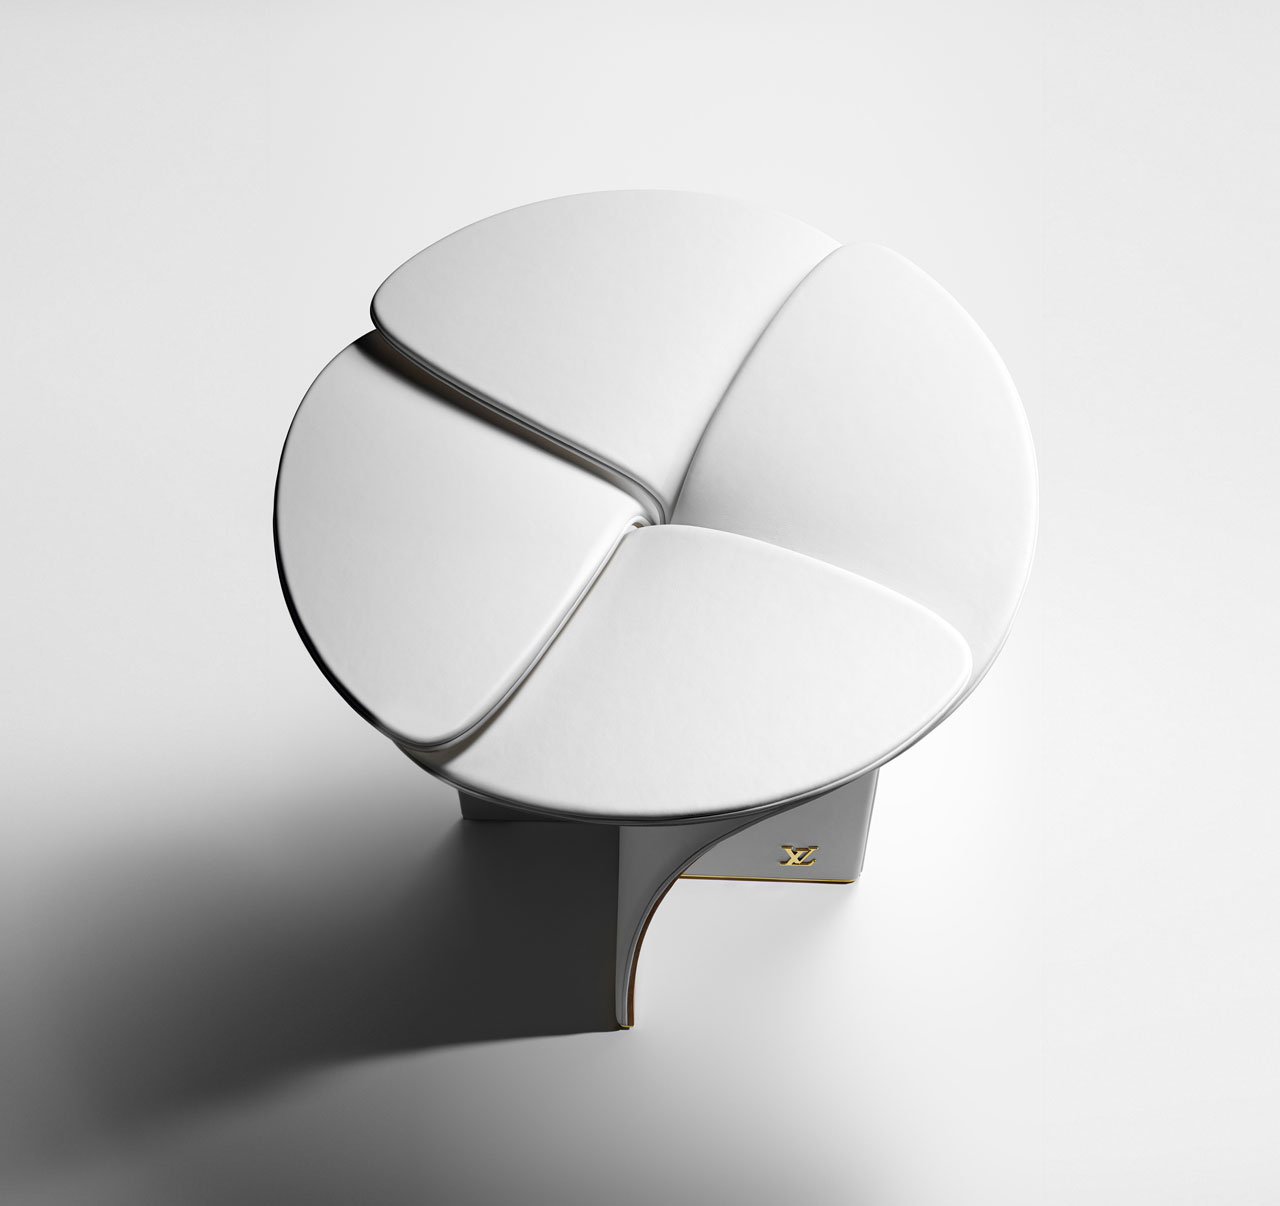 Blossom Stool by Tokujin Yoshioka for Louis Vuitton Objets Nomades 2017. Inspired by Louis Vuitton's historic Monogram-pattern flower, the stool is a rich swirl of wood and soft leather made using the best of the House's traditional techniques and craft. Two colour schemes are available: black and white. There also exists a 24-karat gilded brass version in a very limited edition of 12 pieces.